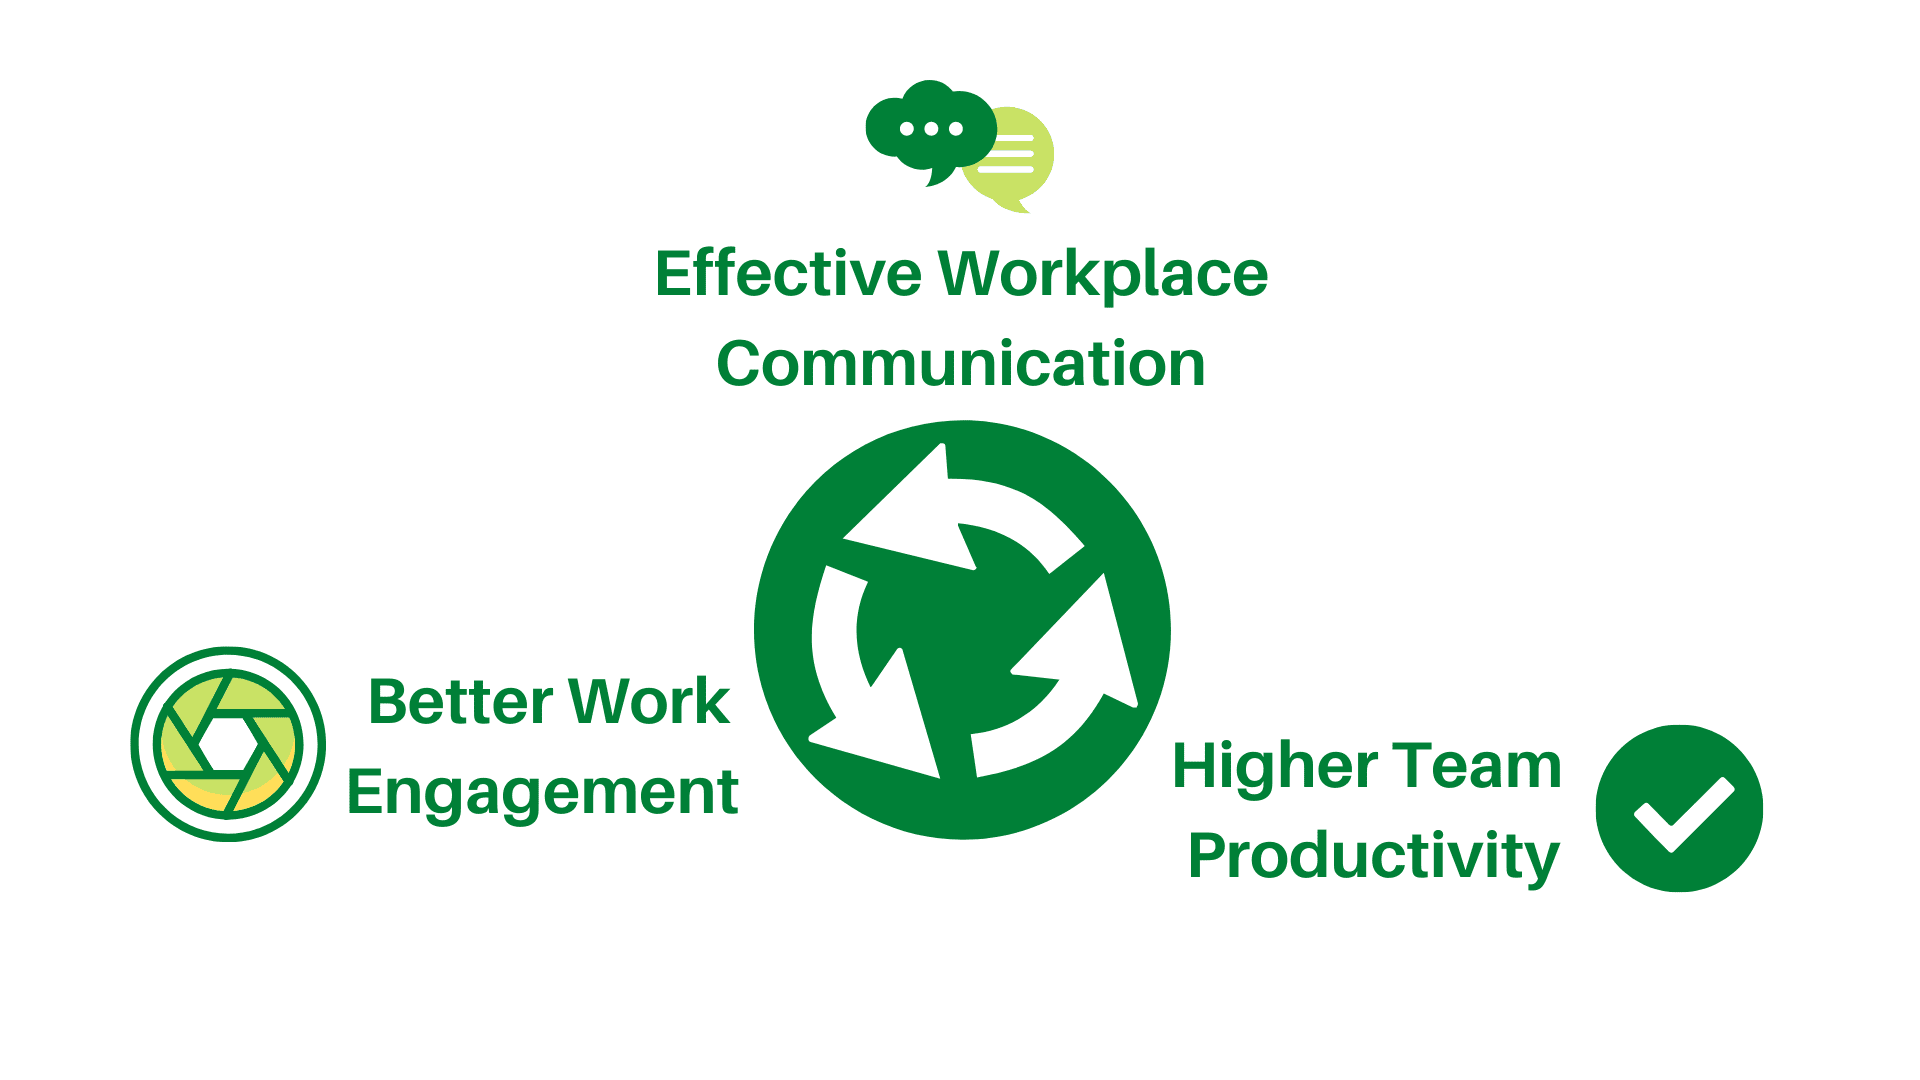 Effective workplace communication